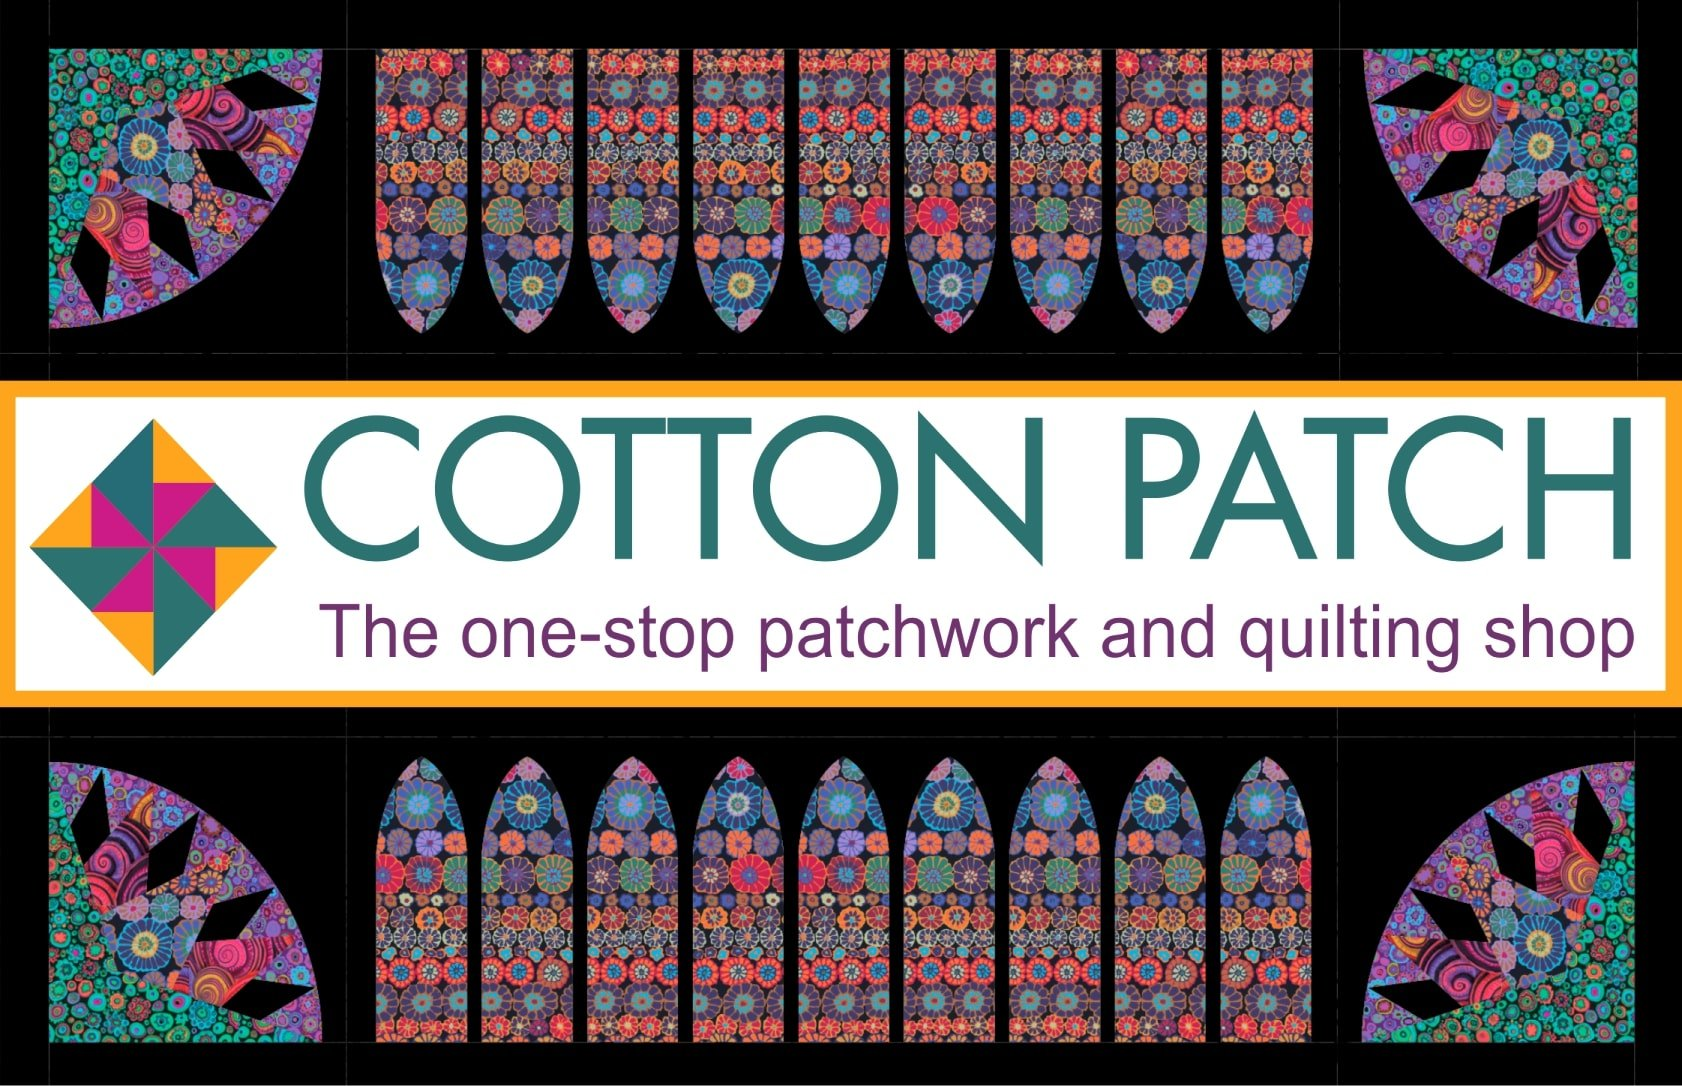 Online quilting store